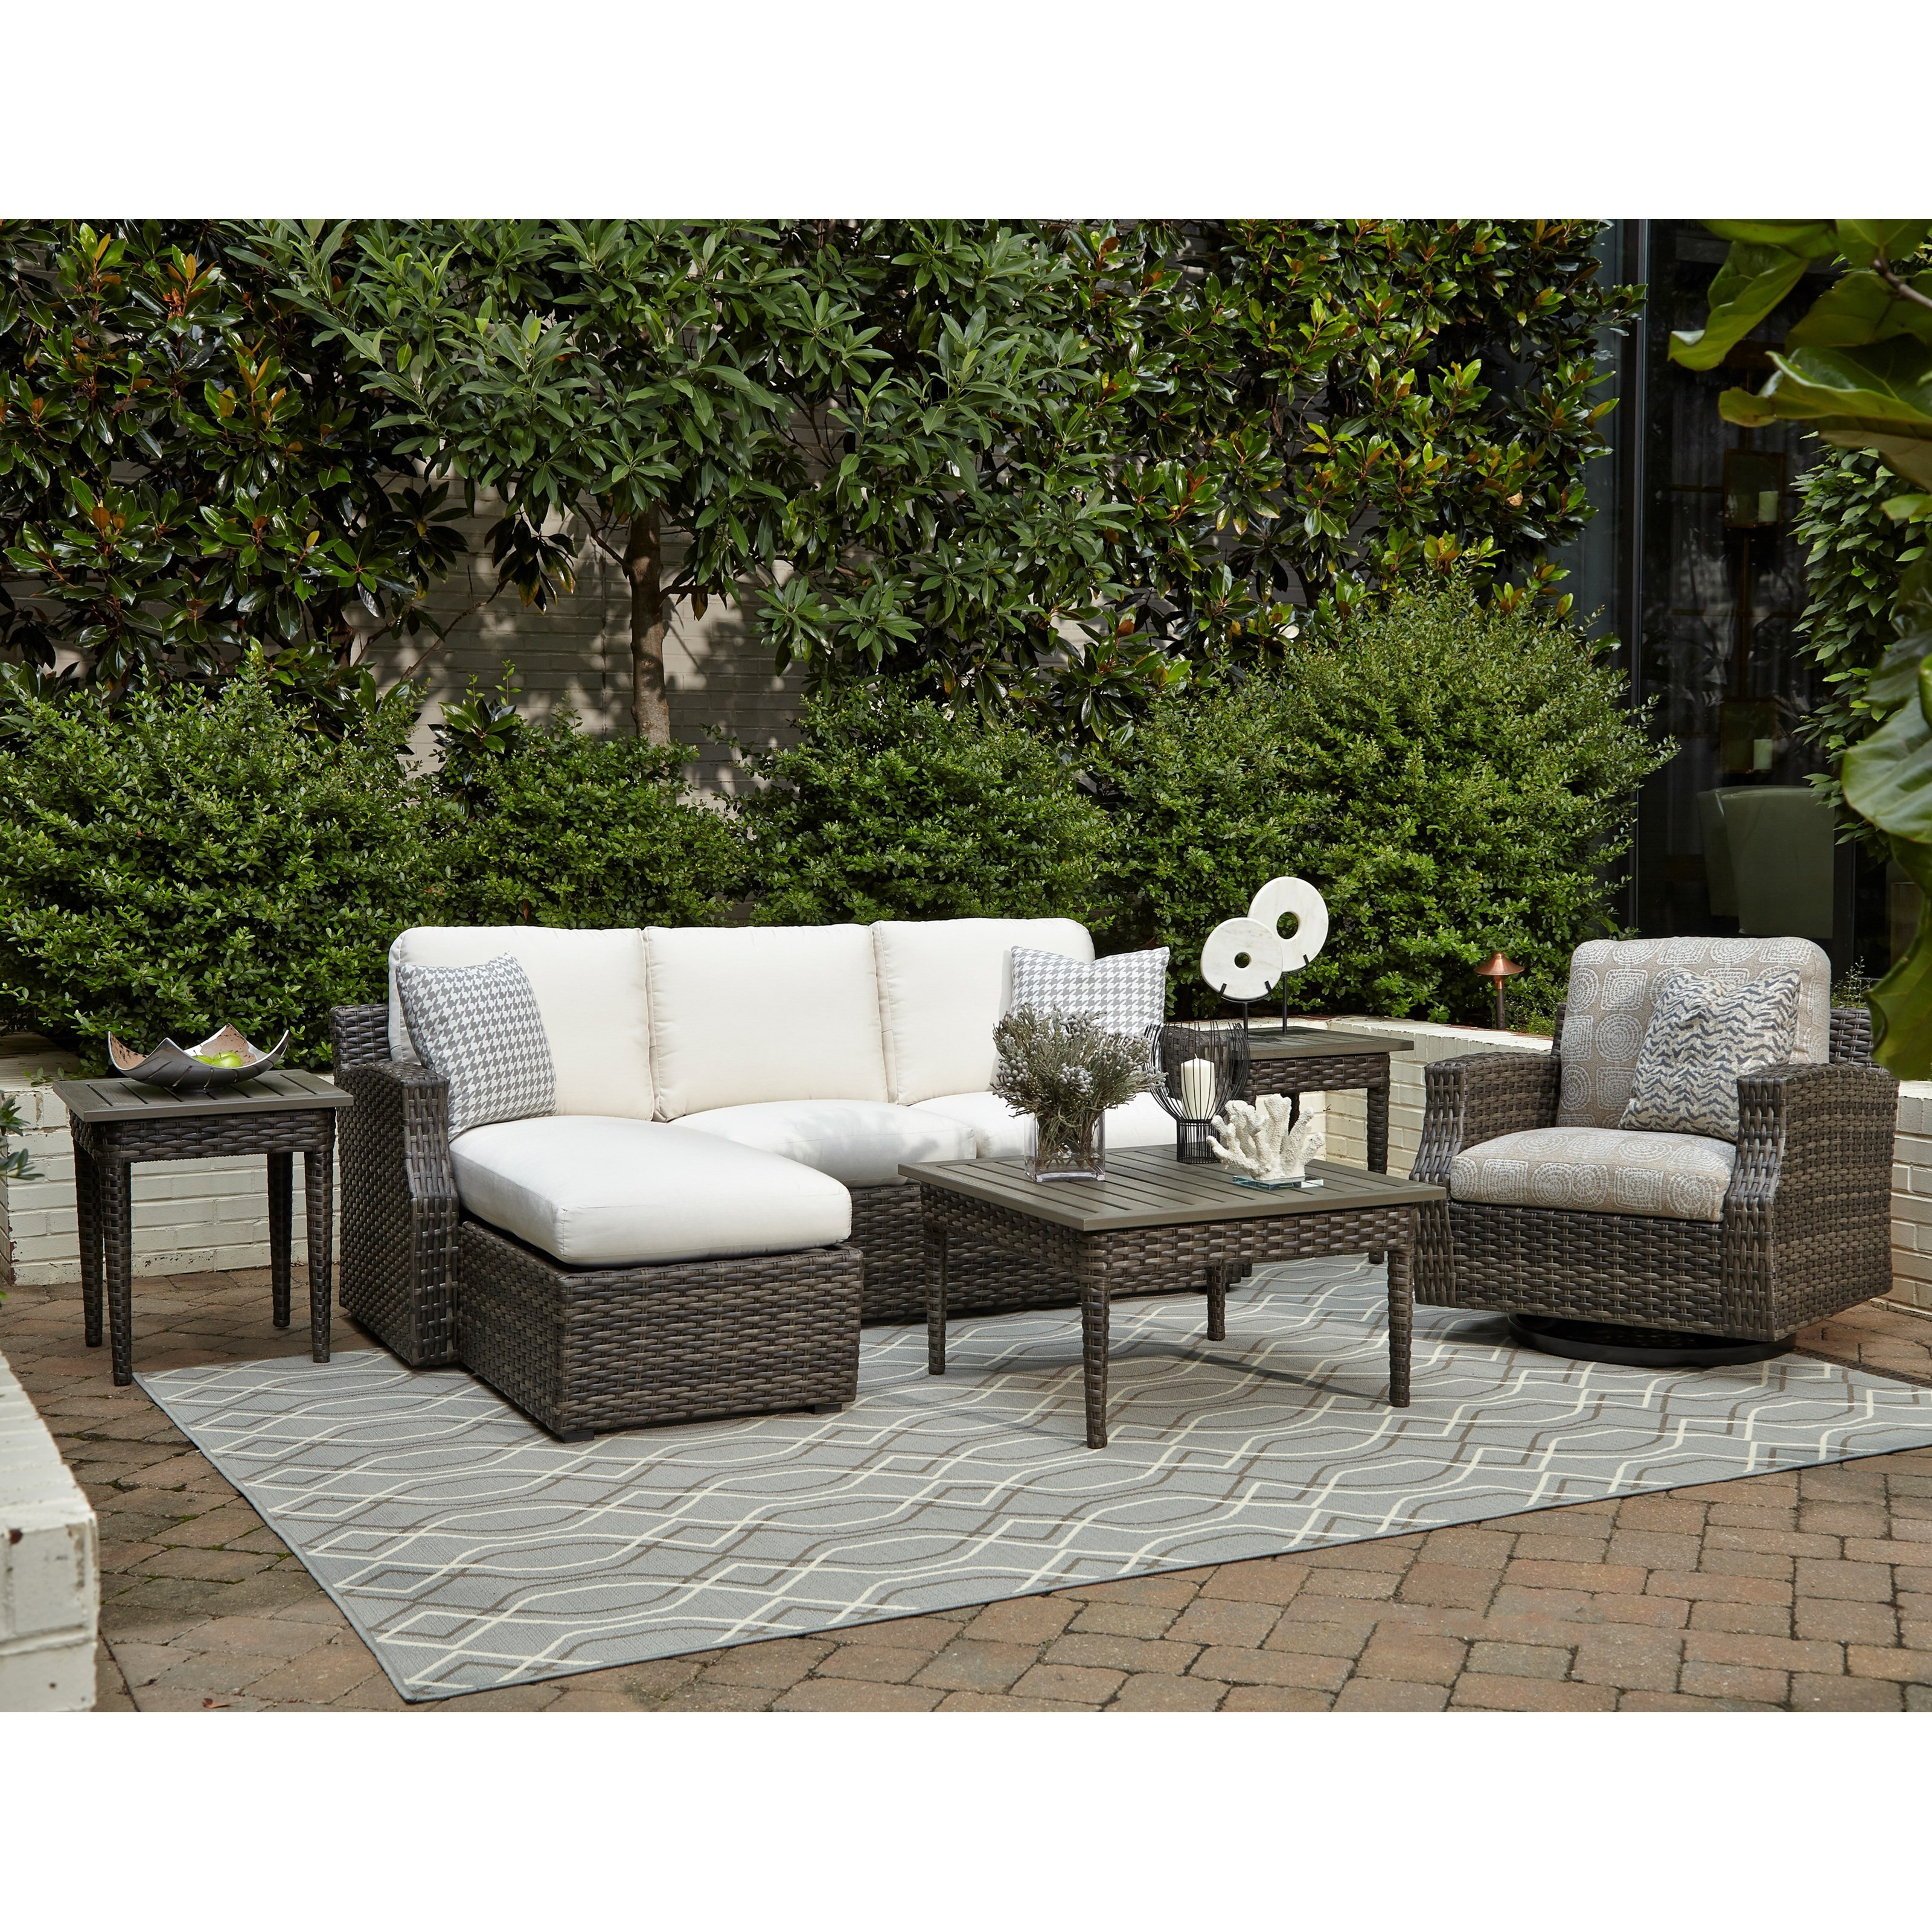 Outdoor Chat Set w/ Drainable Cushions